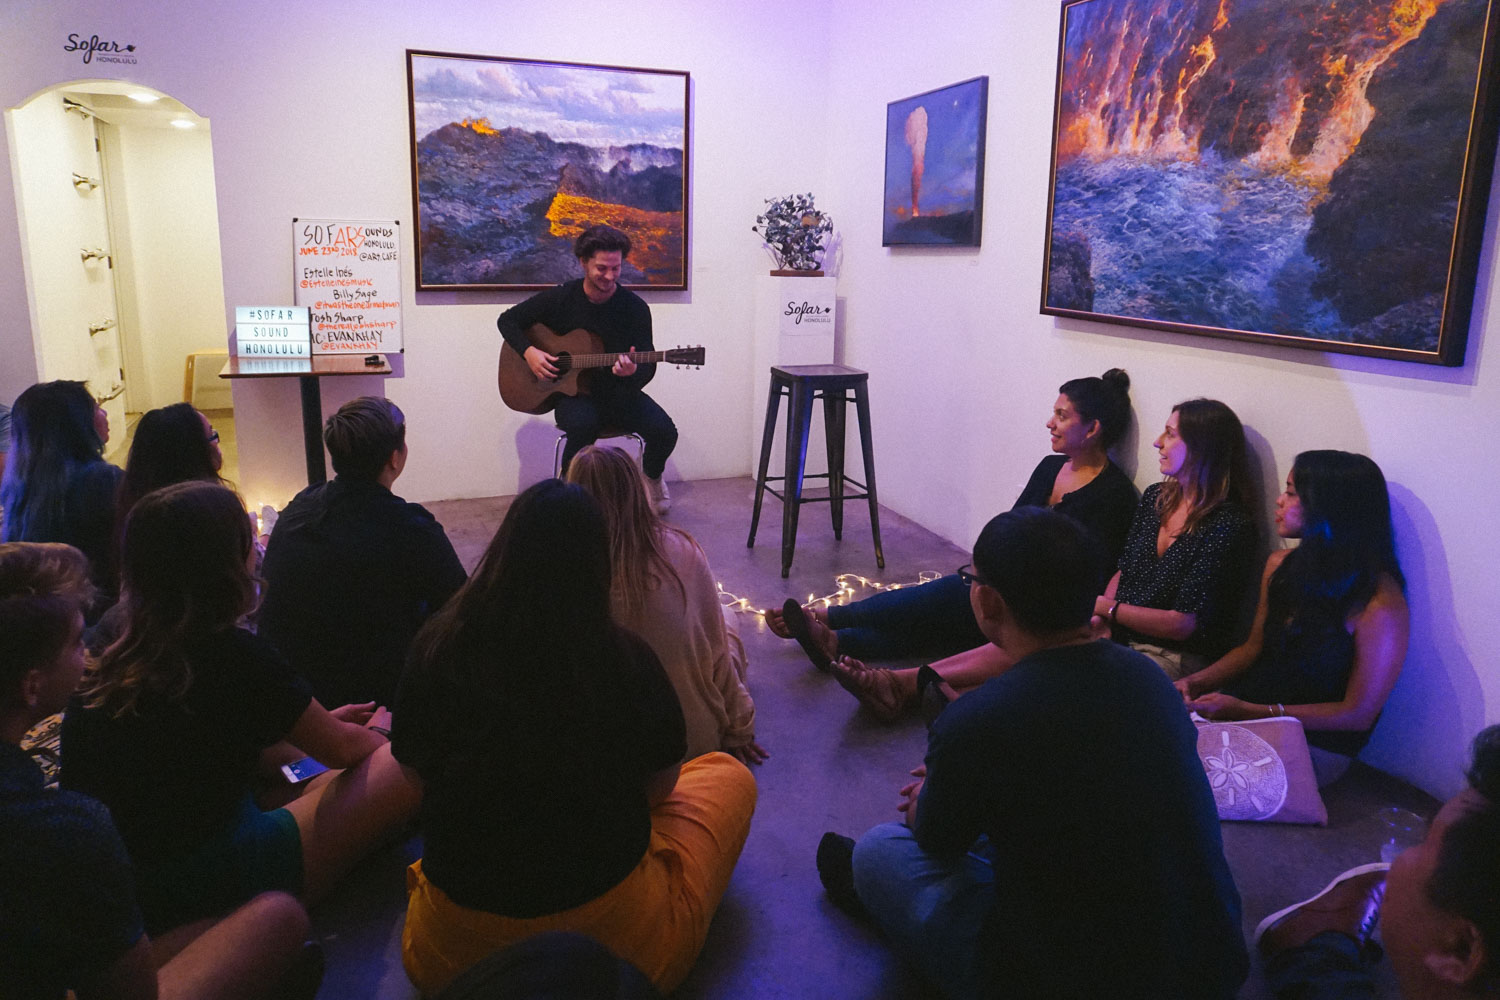 Sofar Sounds Recap